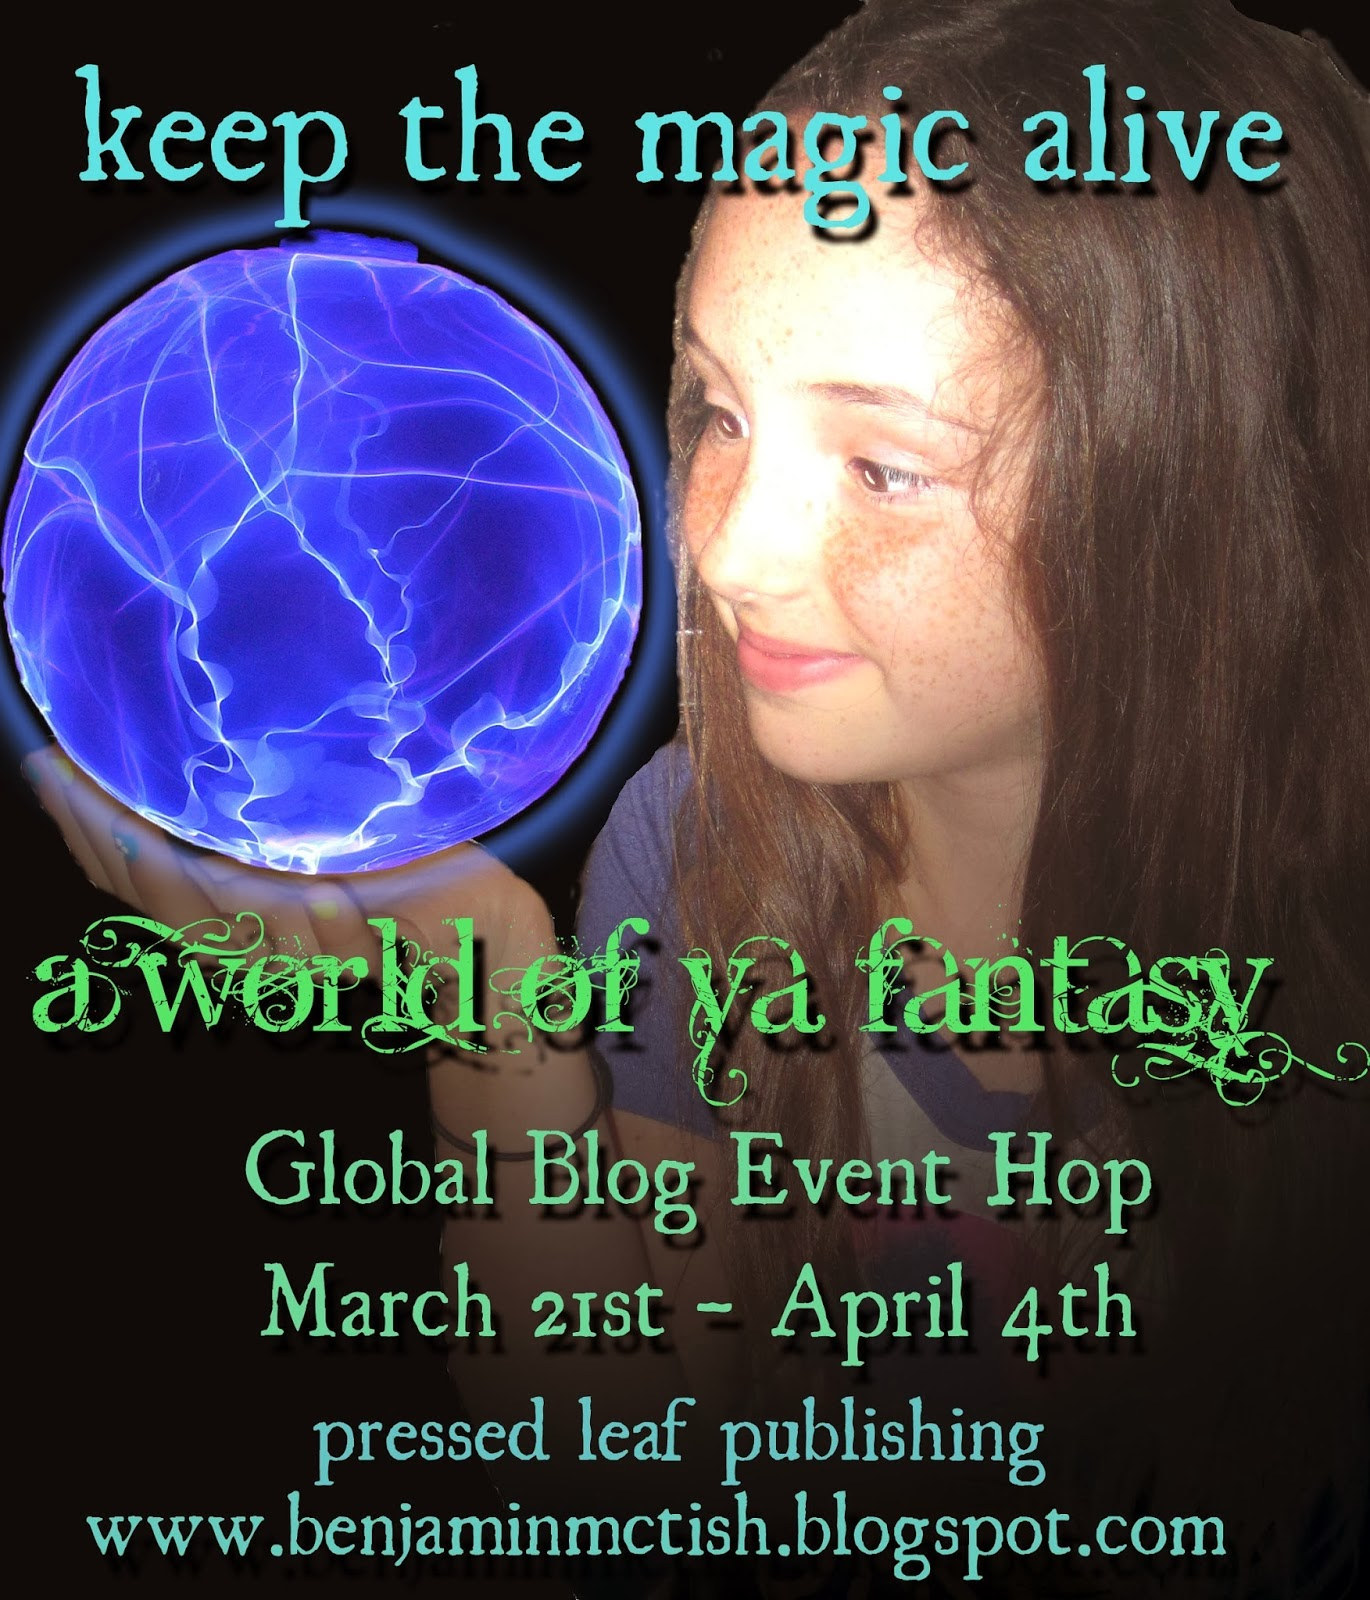 vvb32 reads: A World of YA Fantasy HOP